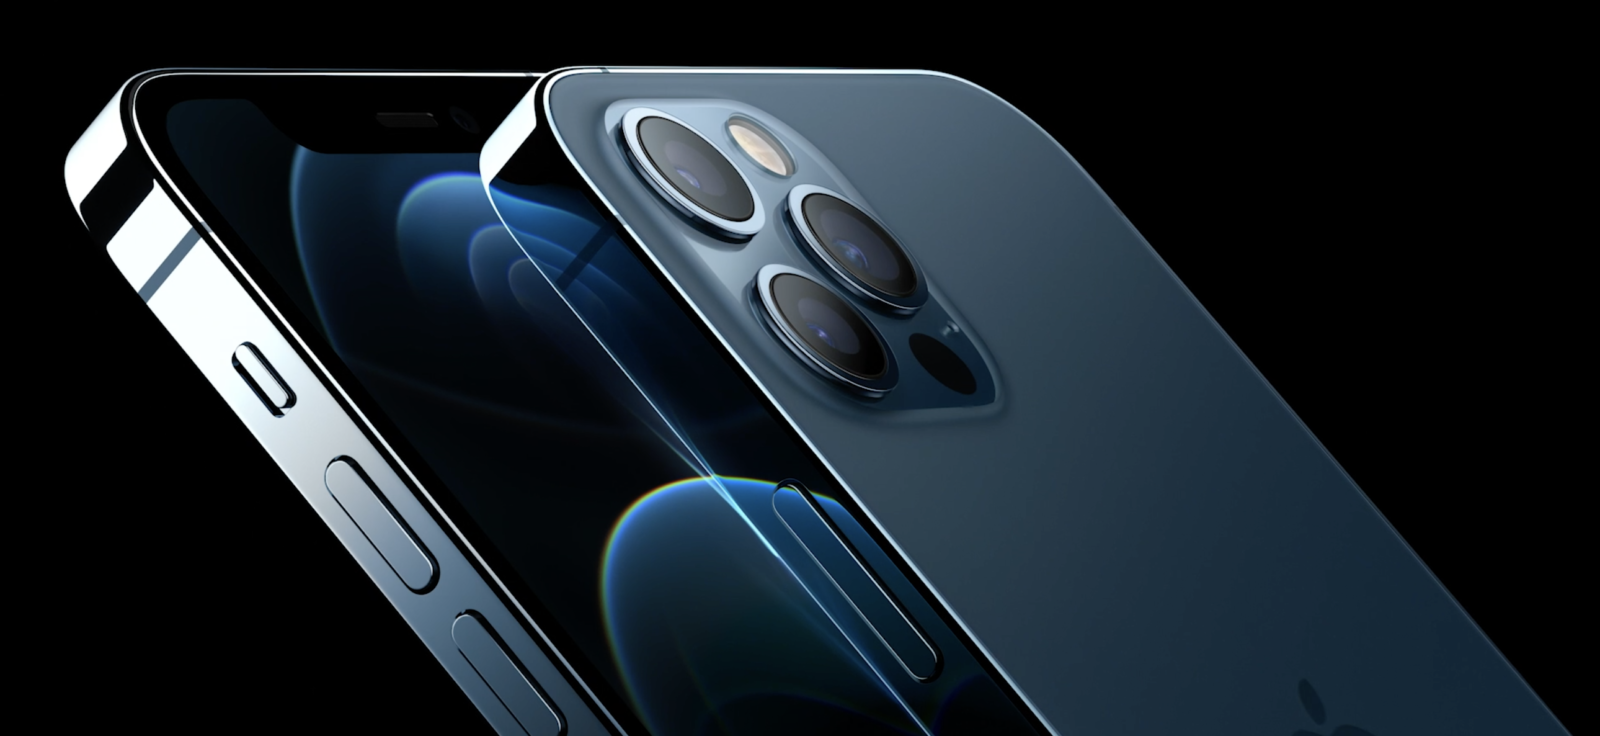 Apple releases four variations of the iPhone 12 — here's all to know about them